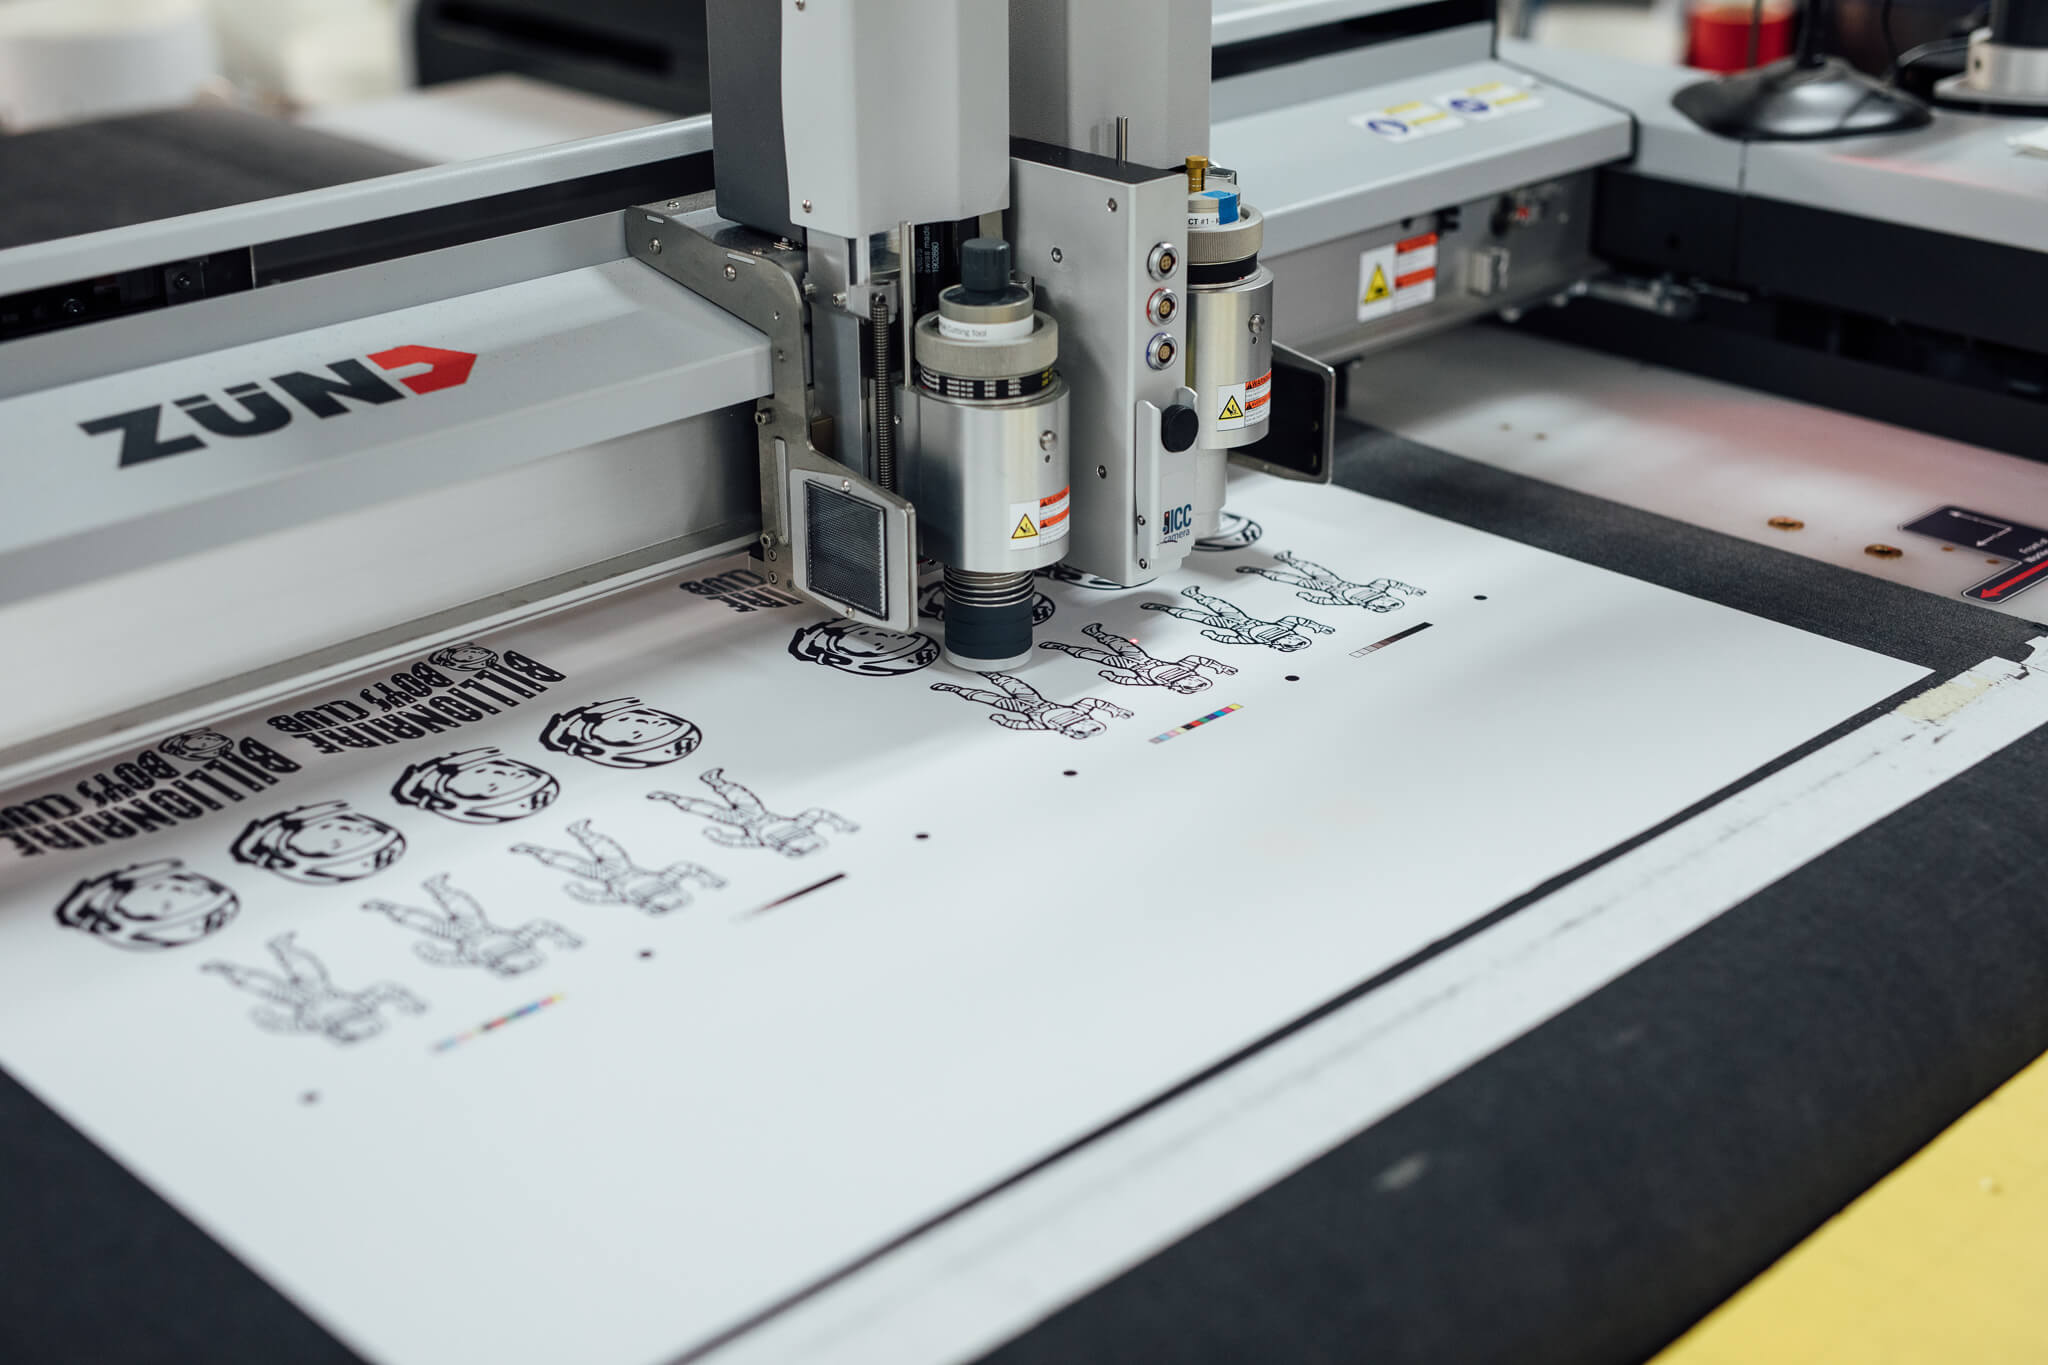 A high-end Zun die cutter cuts out die decals for Billionaire Boys Club